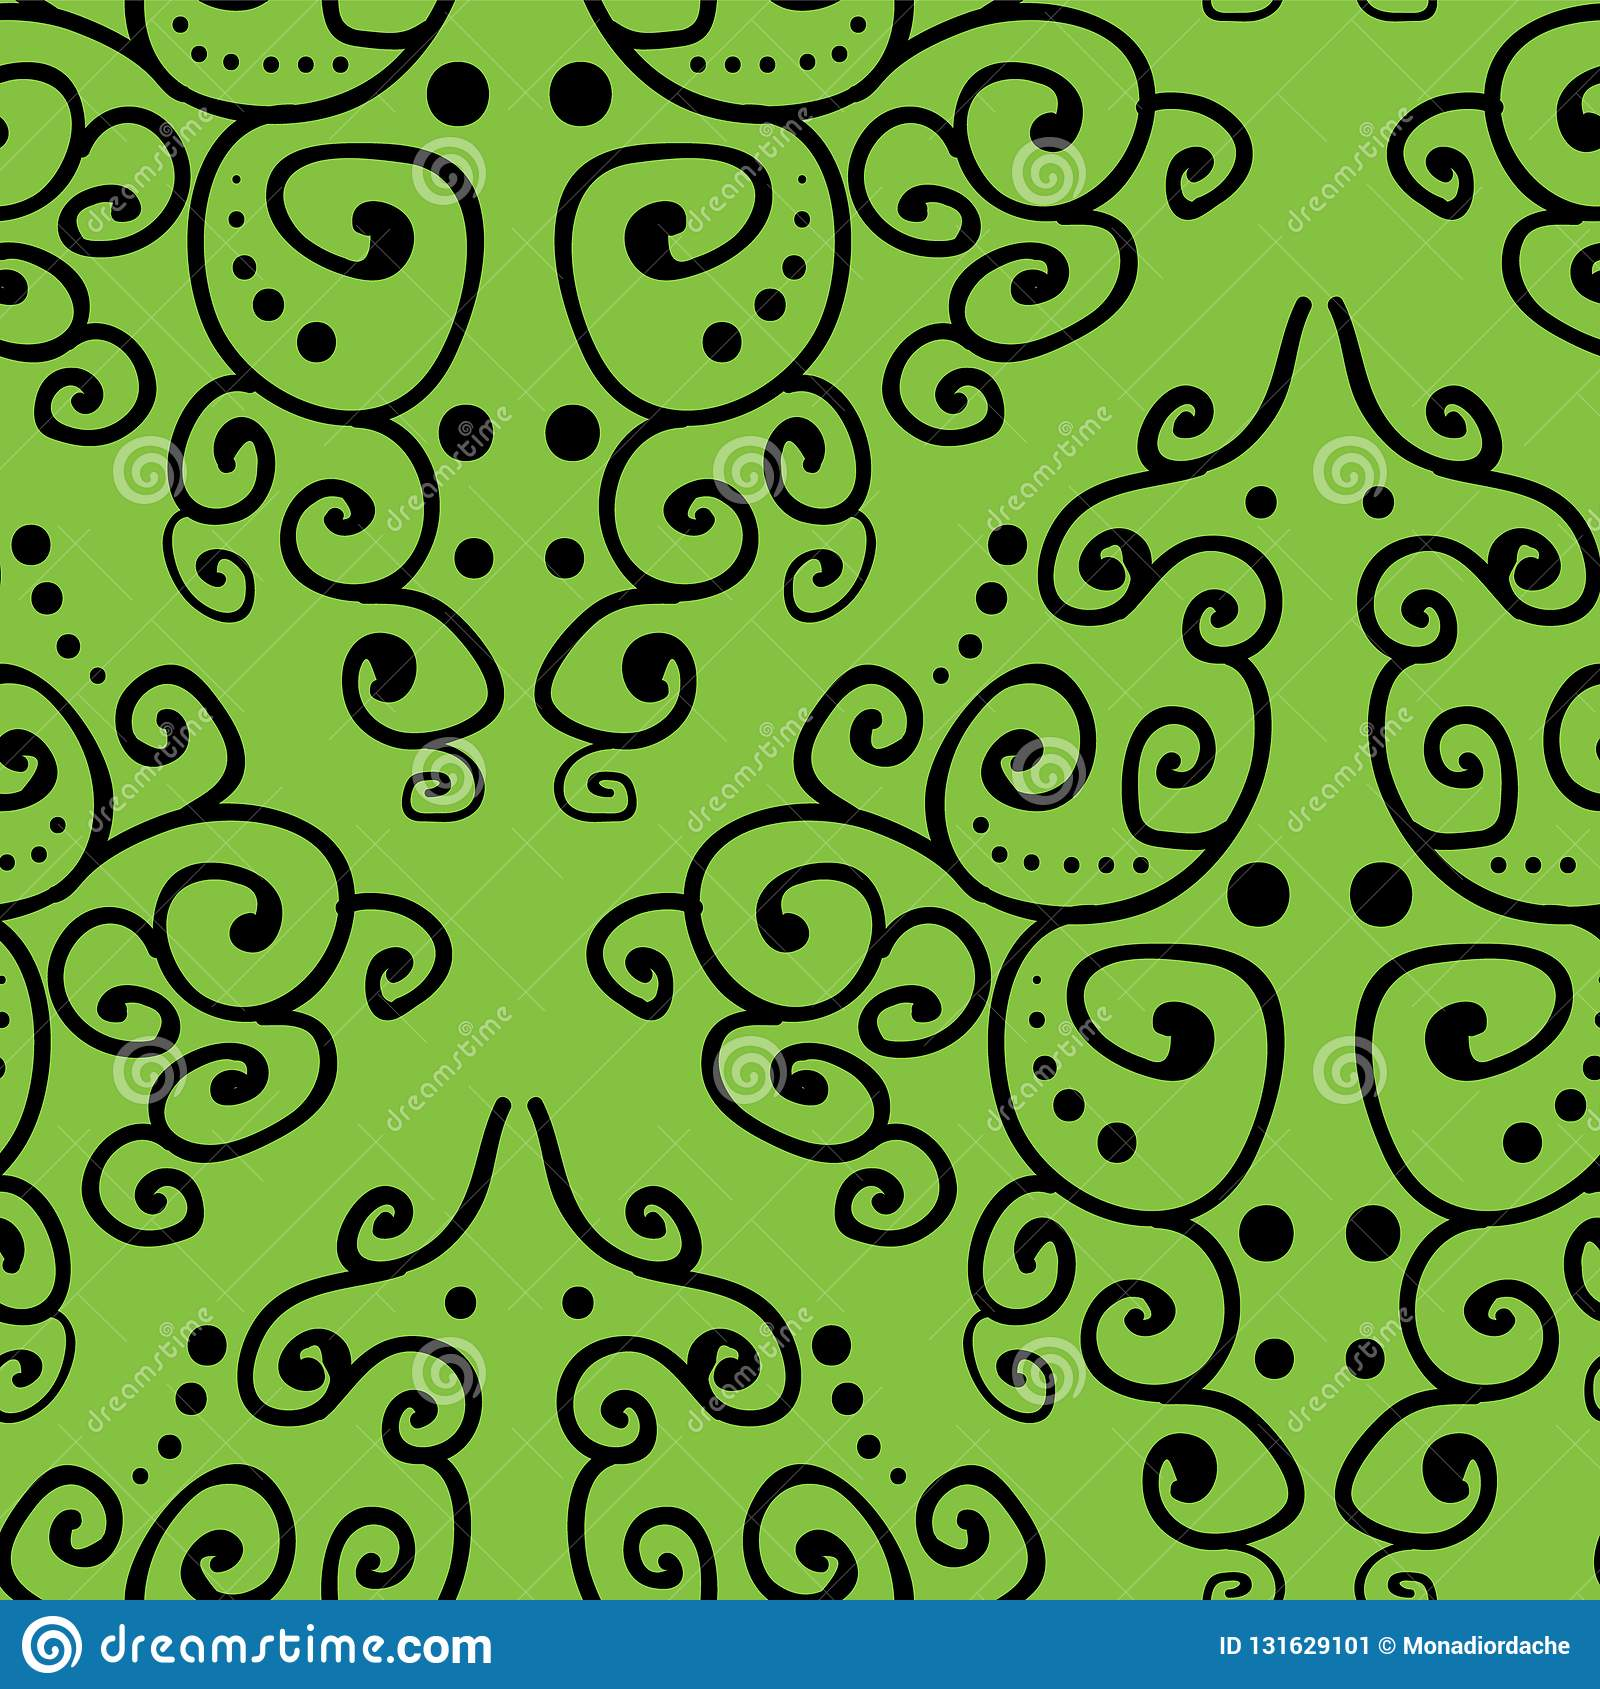 Damask inspired hand drawn line art on green background seamless pattern.